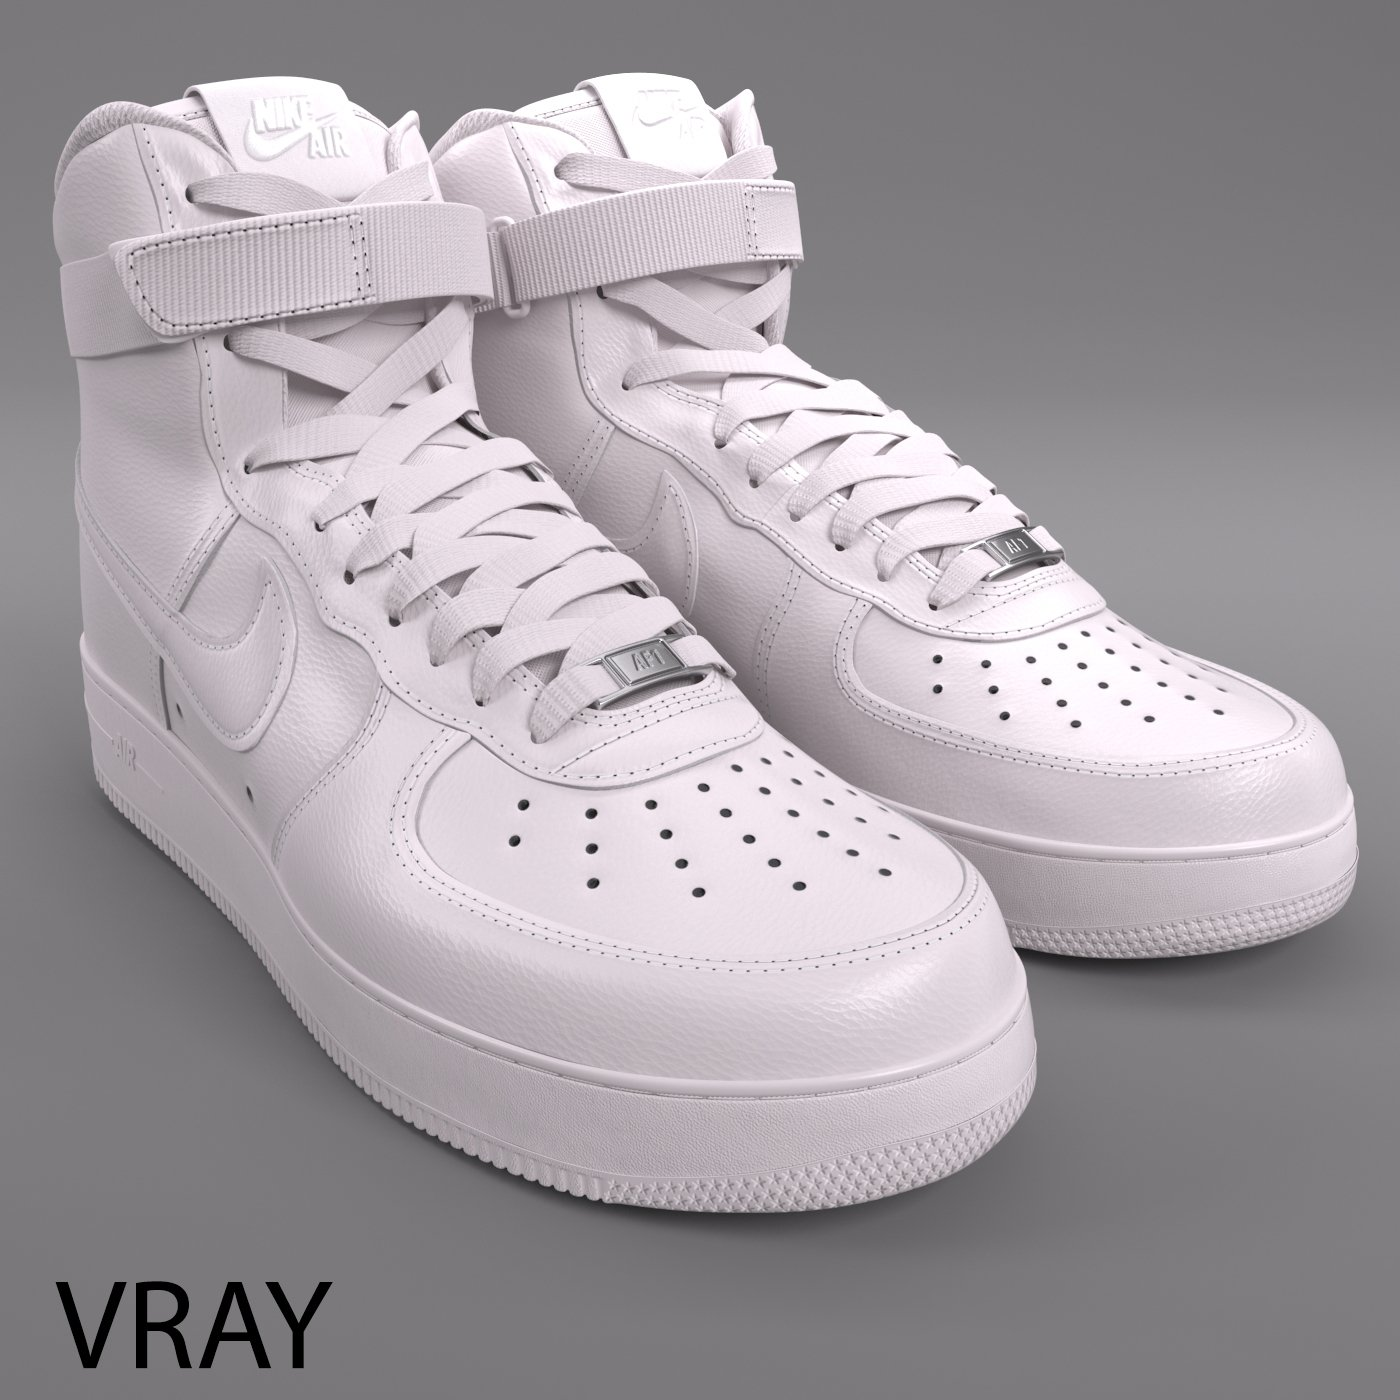 separation shoes 3f790 42213 Air Force 1 Nike PBR 3D Model